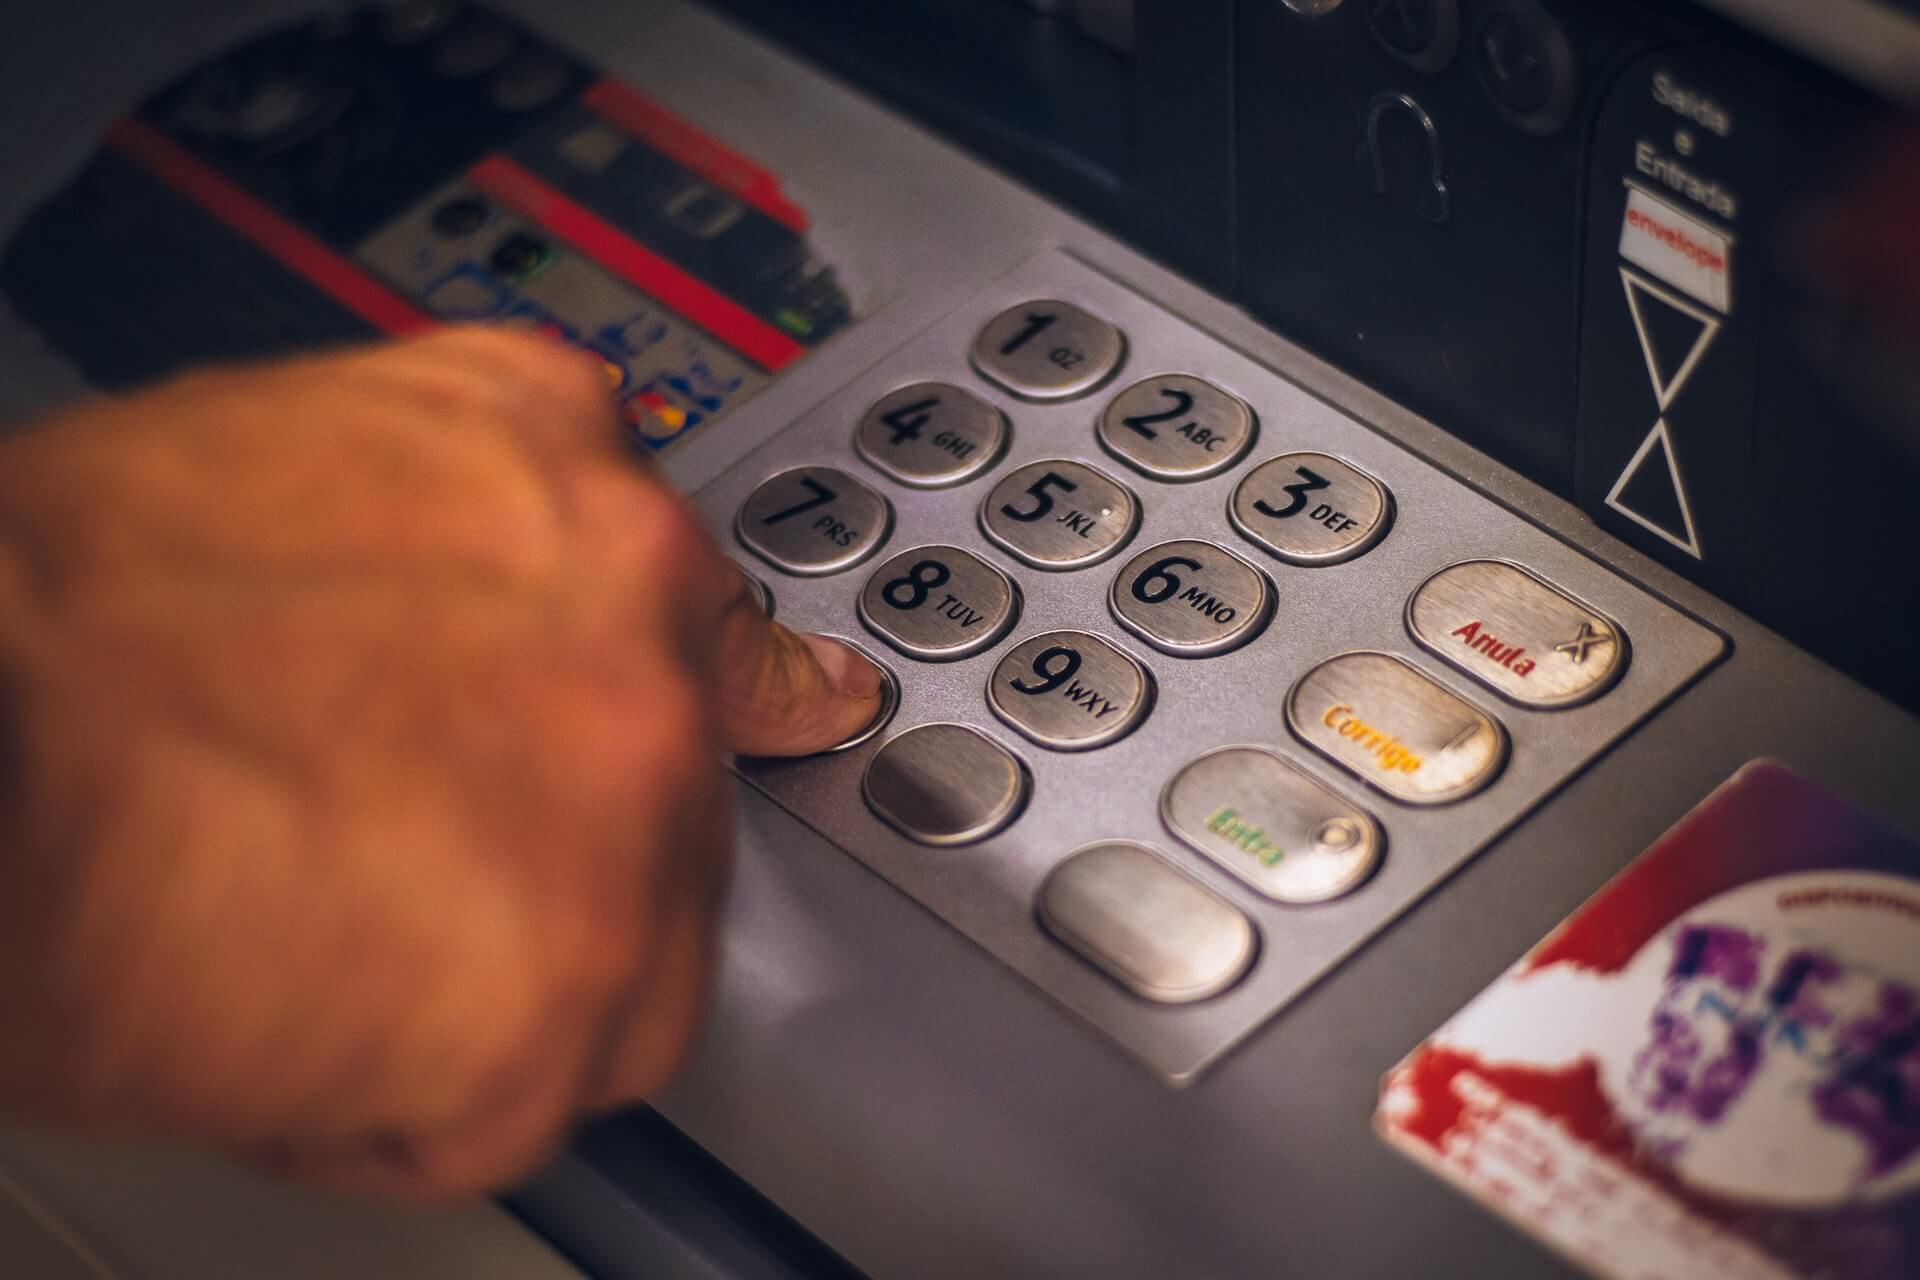 Close up photo of person inputting pin at an atm machine